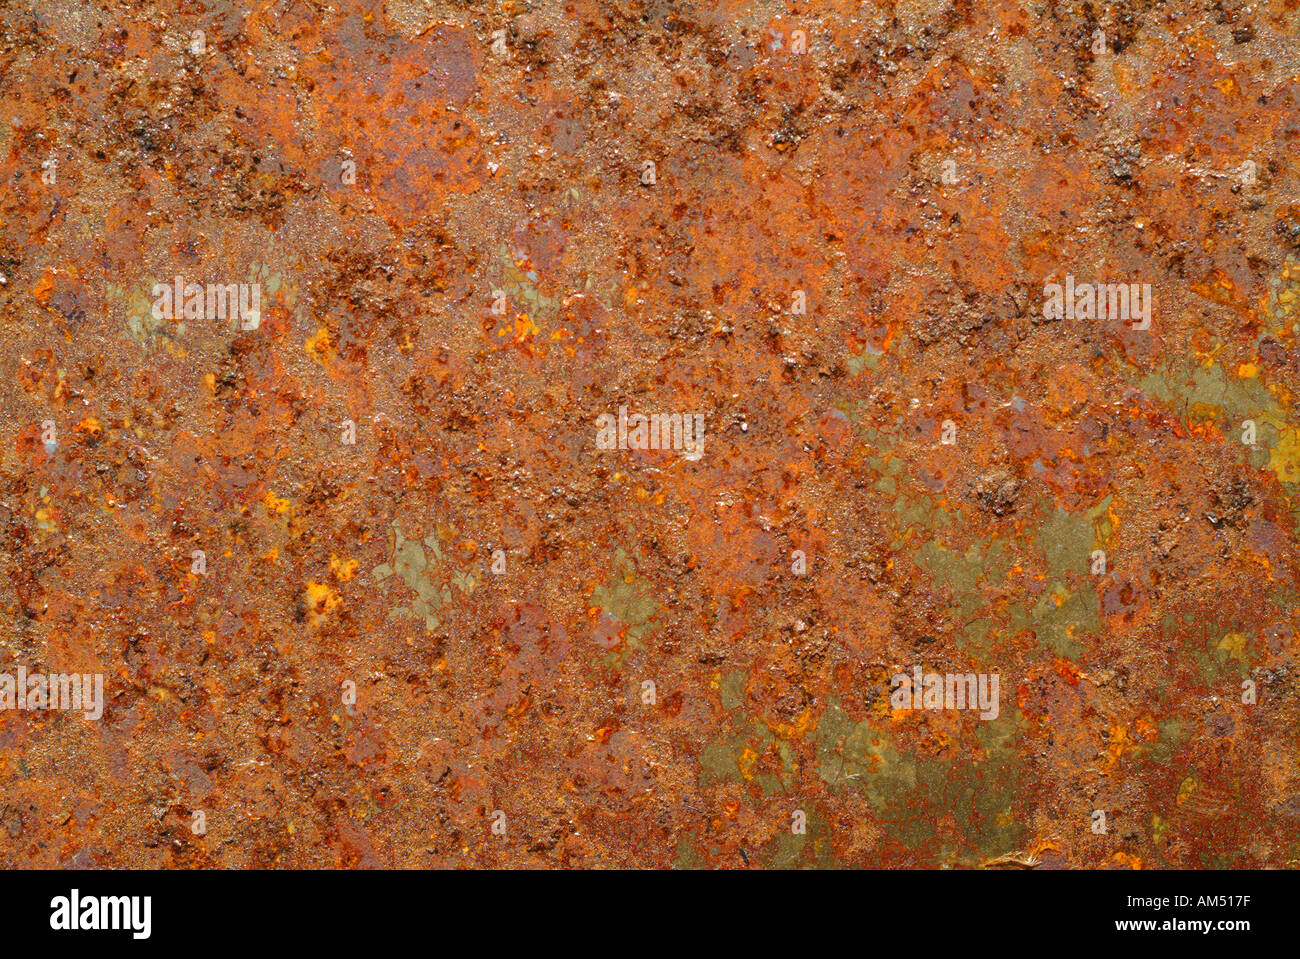 A sheet of rusty metal for backgrounds - Stock Image